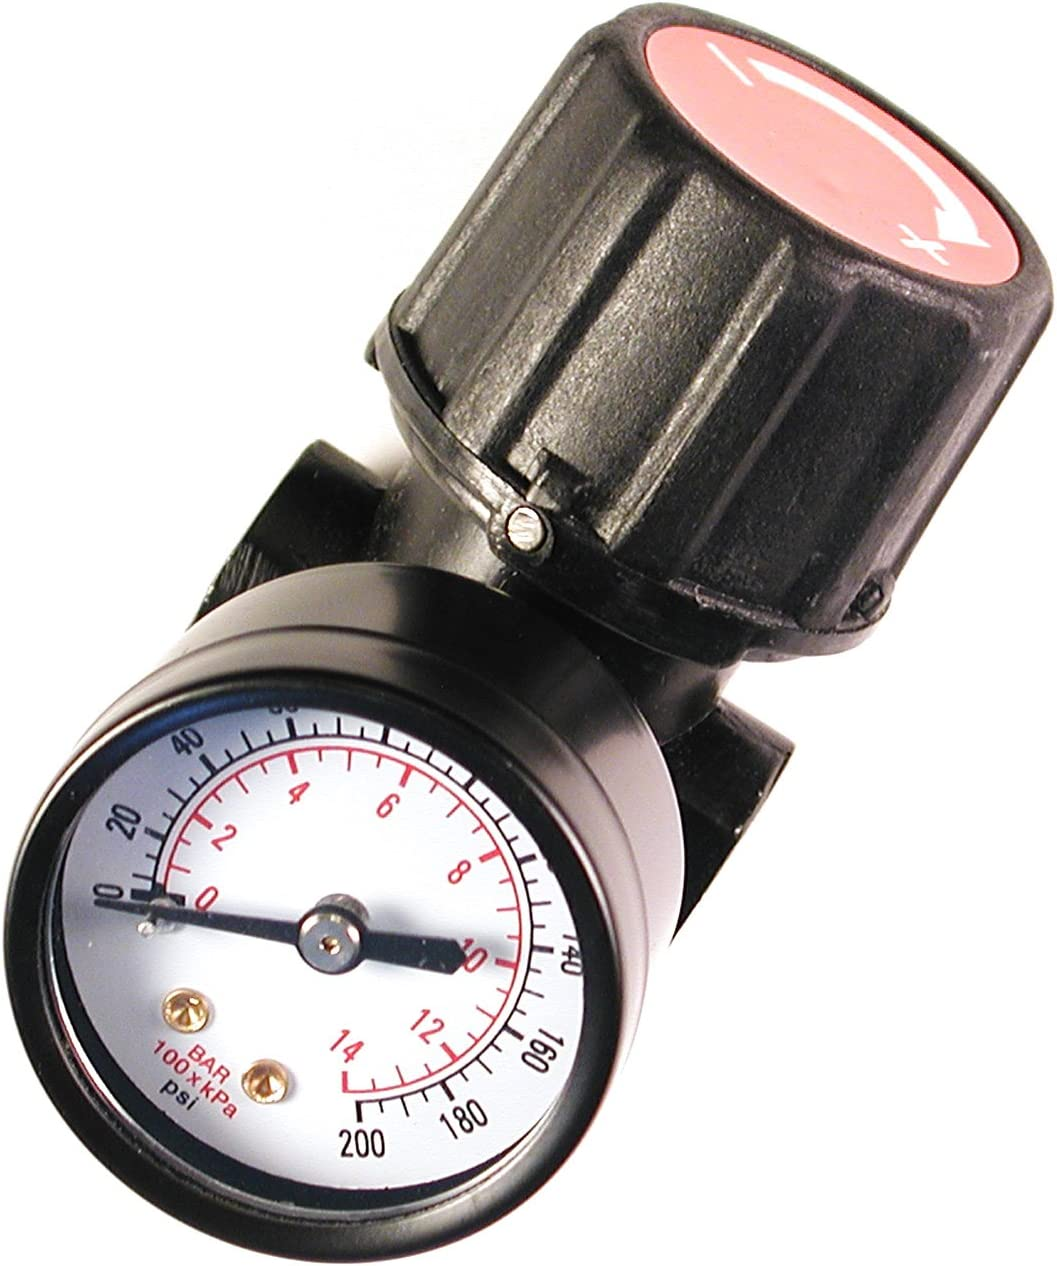 Primefit Max 89% OFF Beauty products CR1401G Replacement Air with Regulator steel-Protected